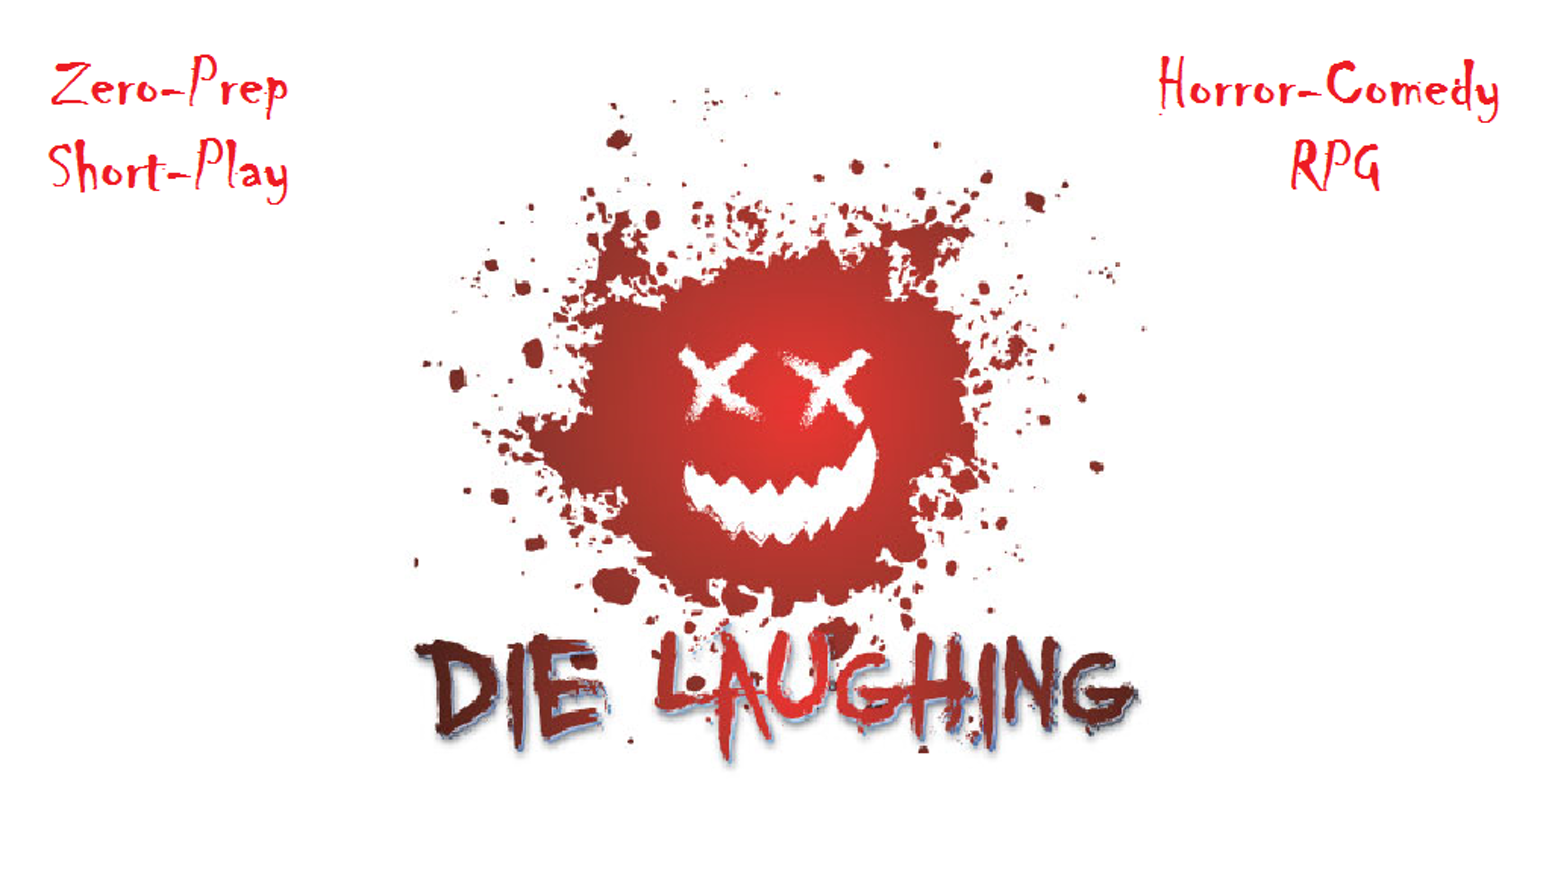 The zero-prep, horror-comedy RPG that puts the laughter in slaughter.